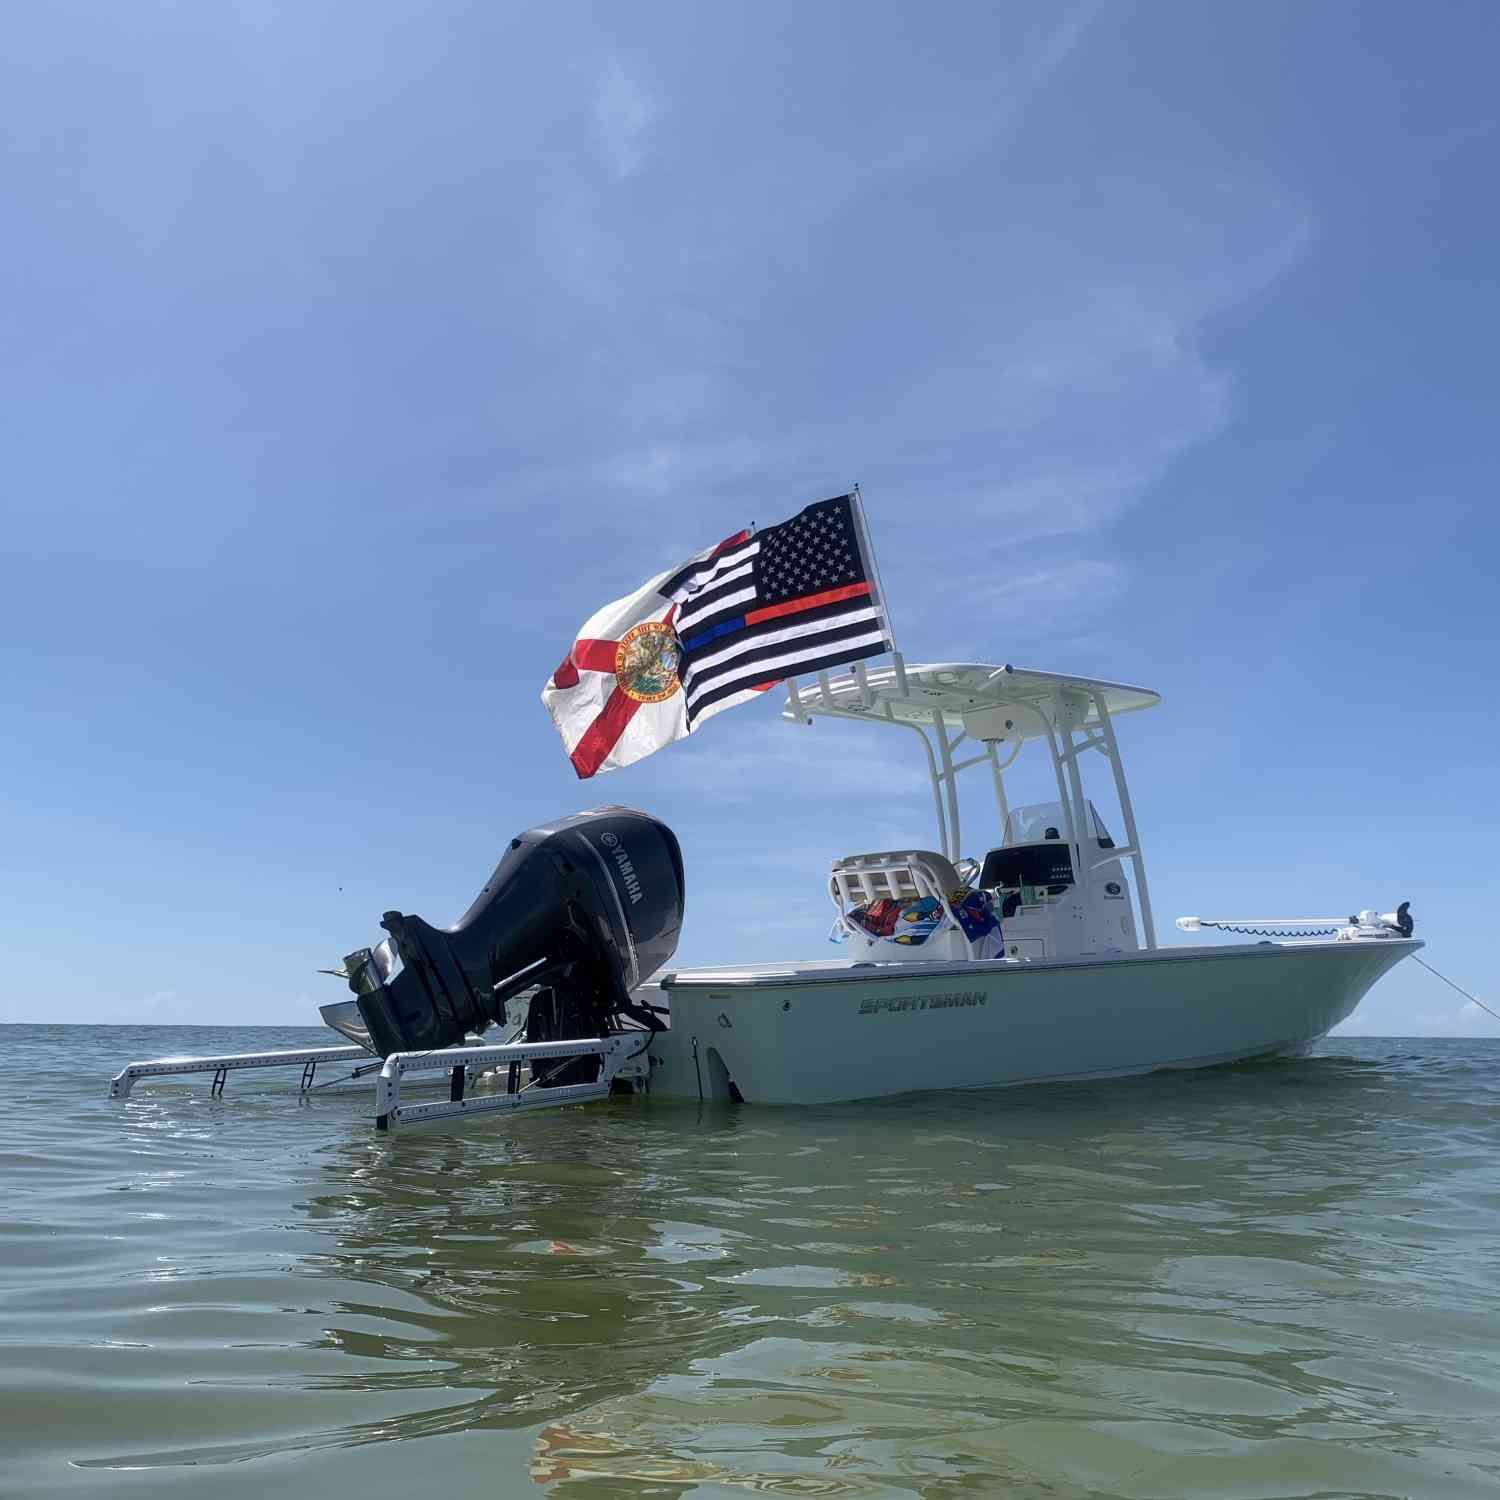 Title: Saturdaze - On board their Sportsman Masters 247 Bay Boat - Location: Cayo Costa, Florida. Participating in the Photo Contest #SportsmanDecember2020